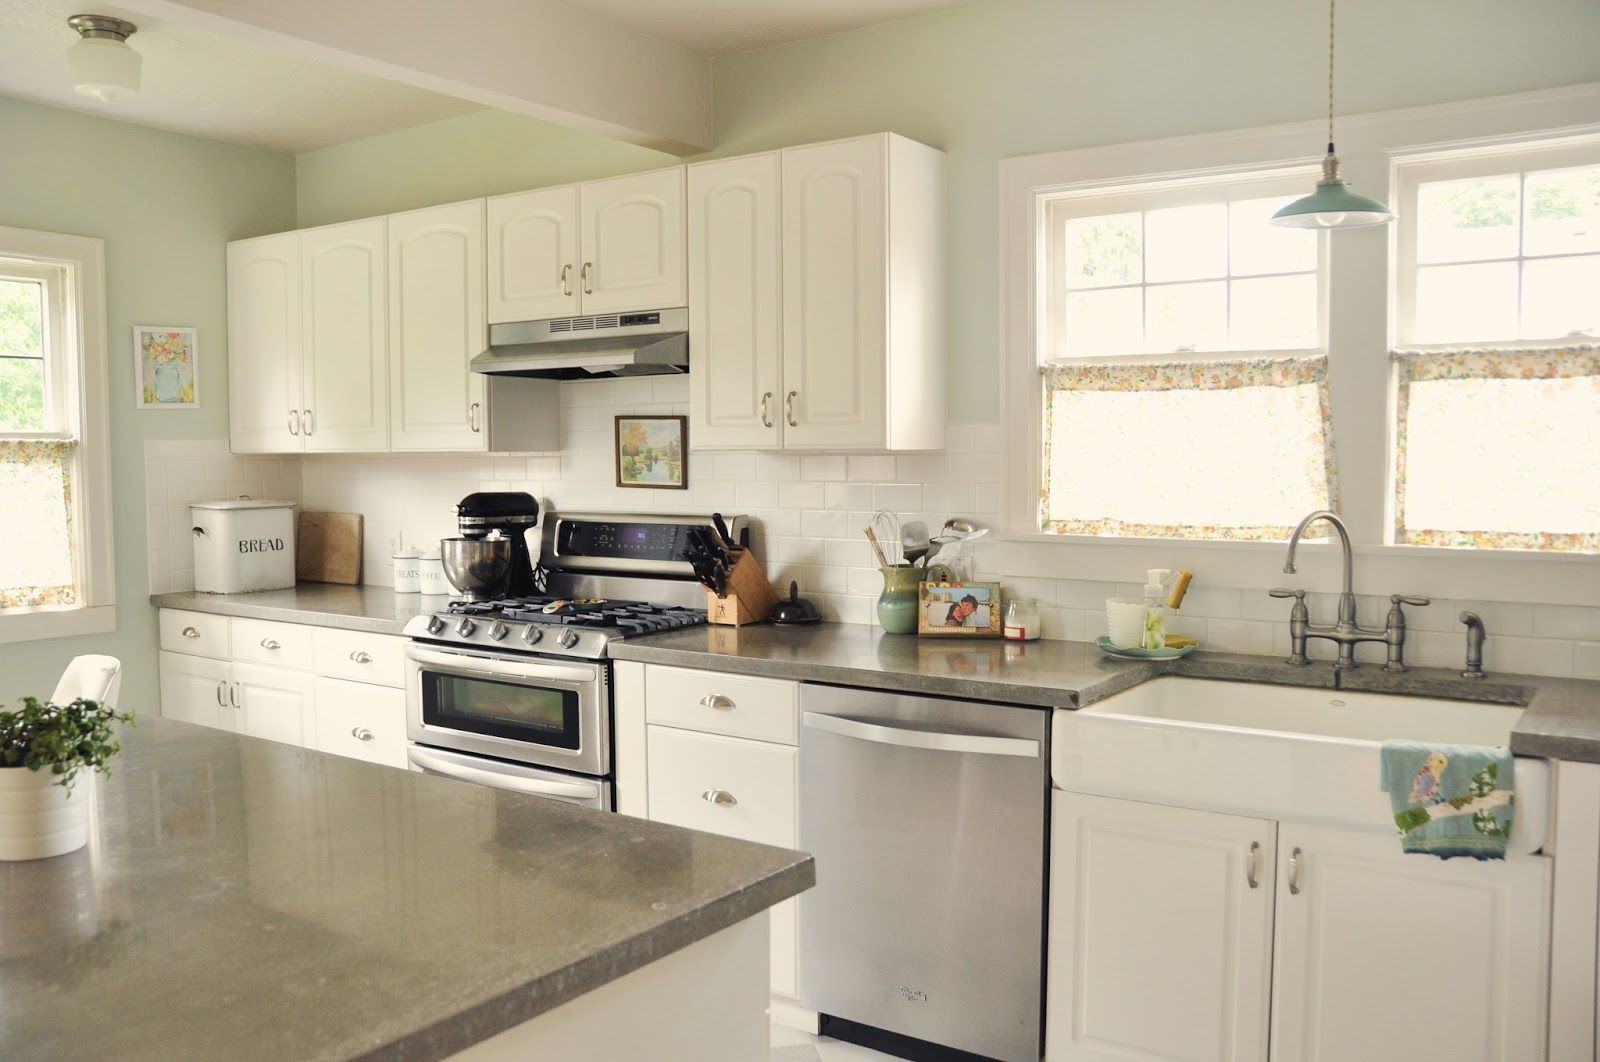 life made lovely | Kitchen, Home, Kitchen dining